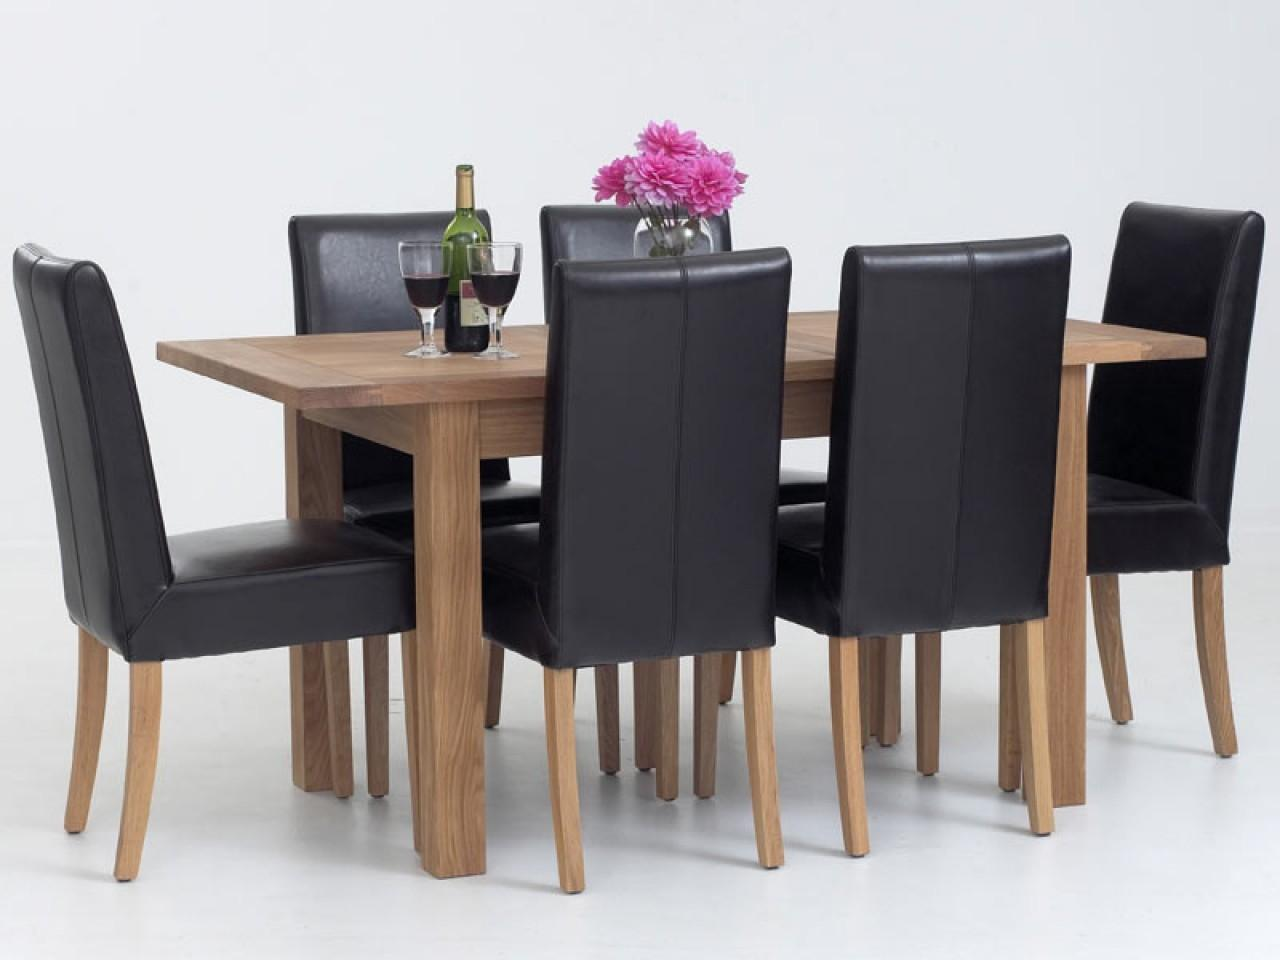 Kitchen Chairs Leather Wood Dining Table Kmartcom